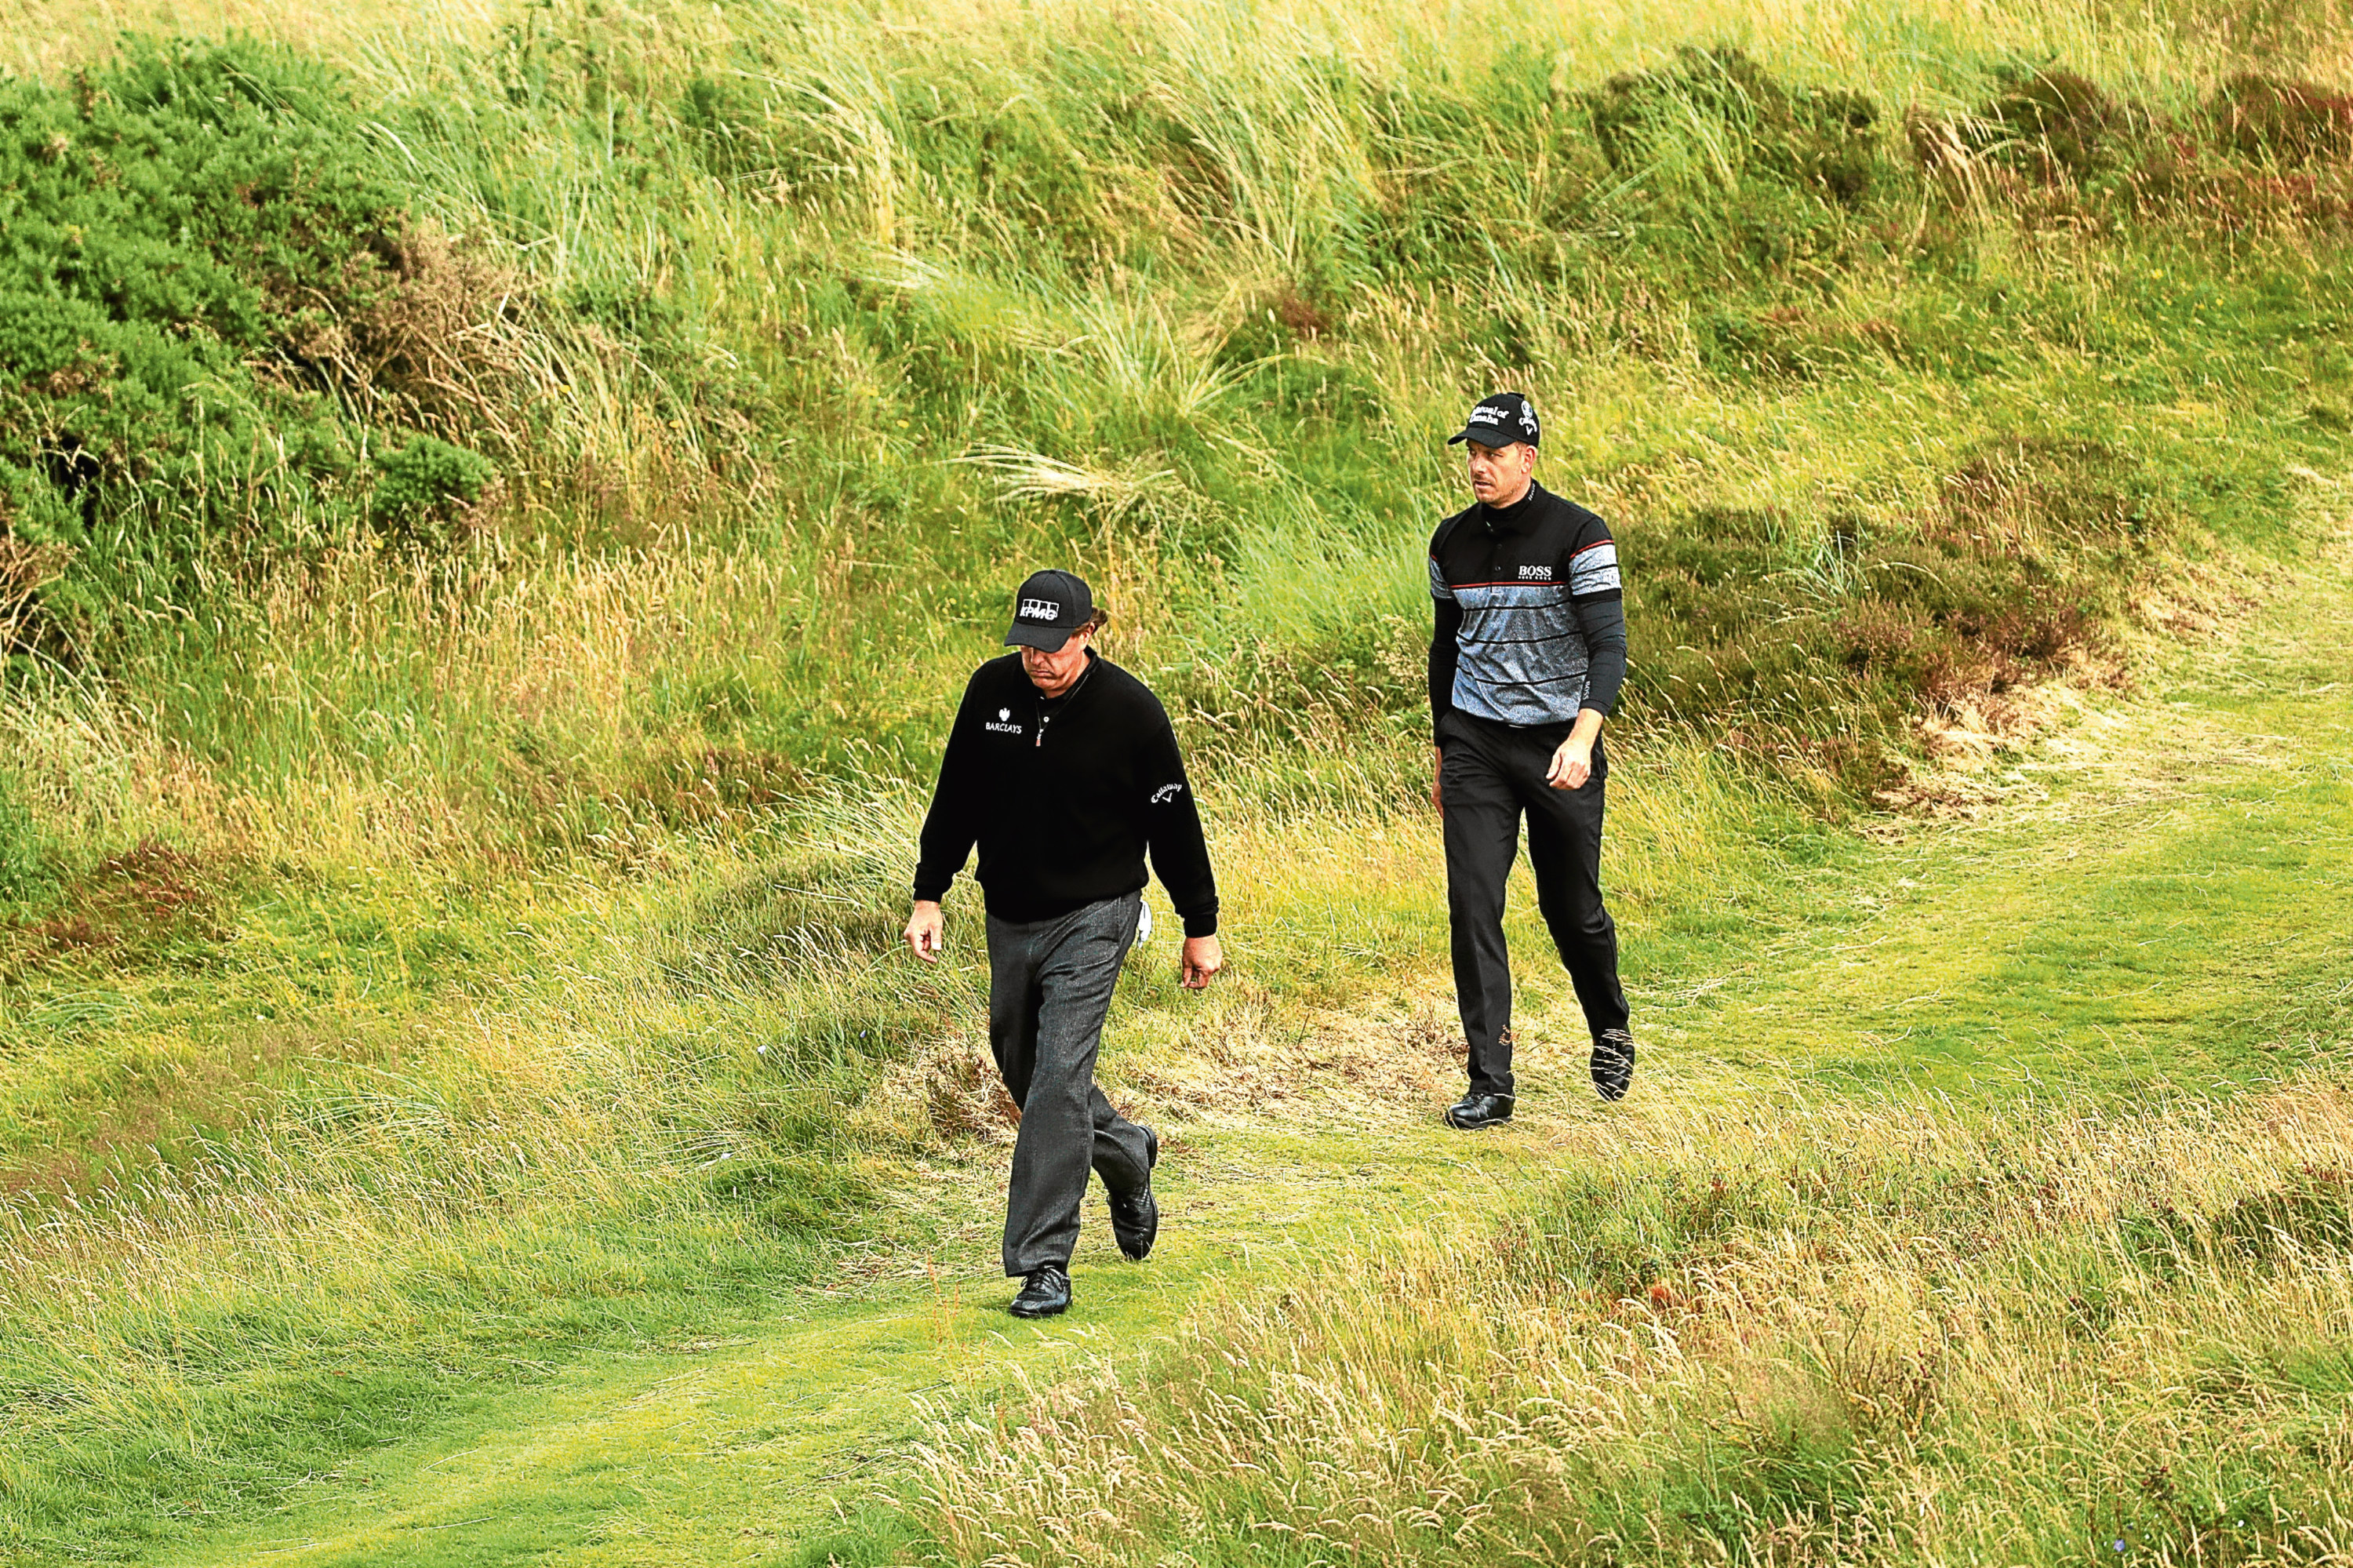 Phil Mickelson and Henrik Stenson during their duel in the dunes at Royal Troon.